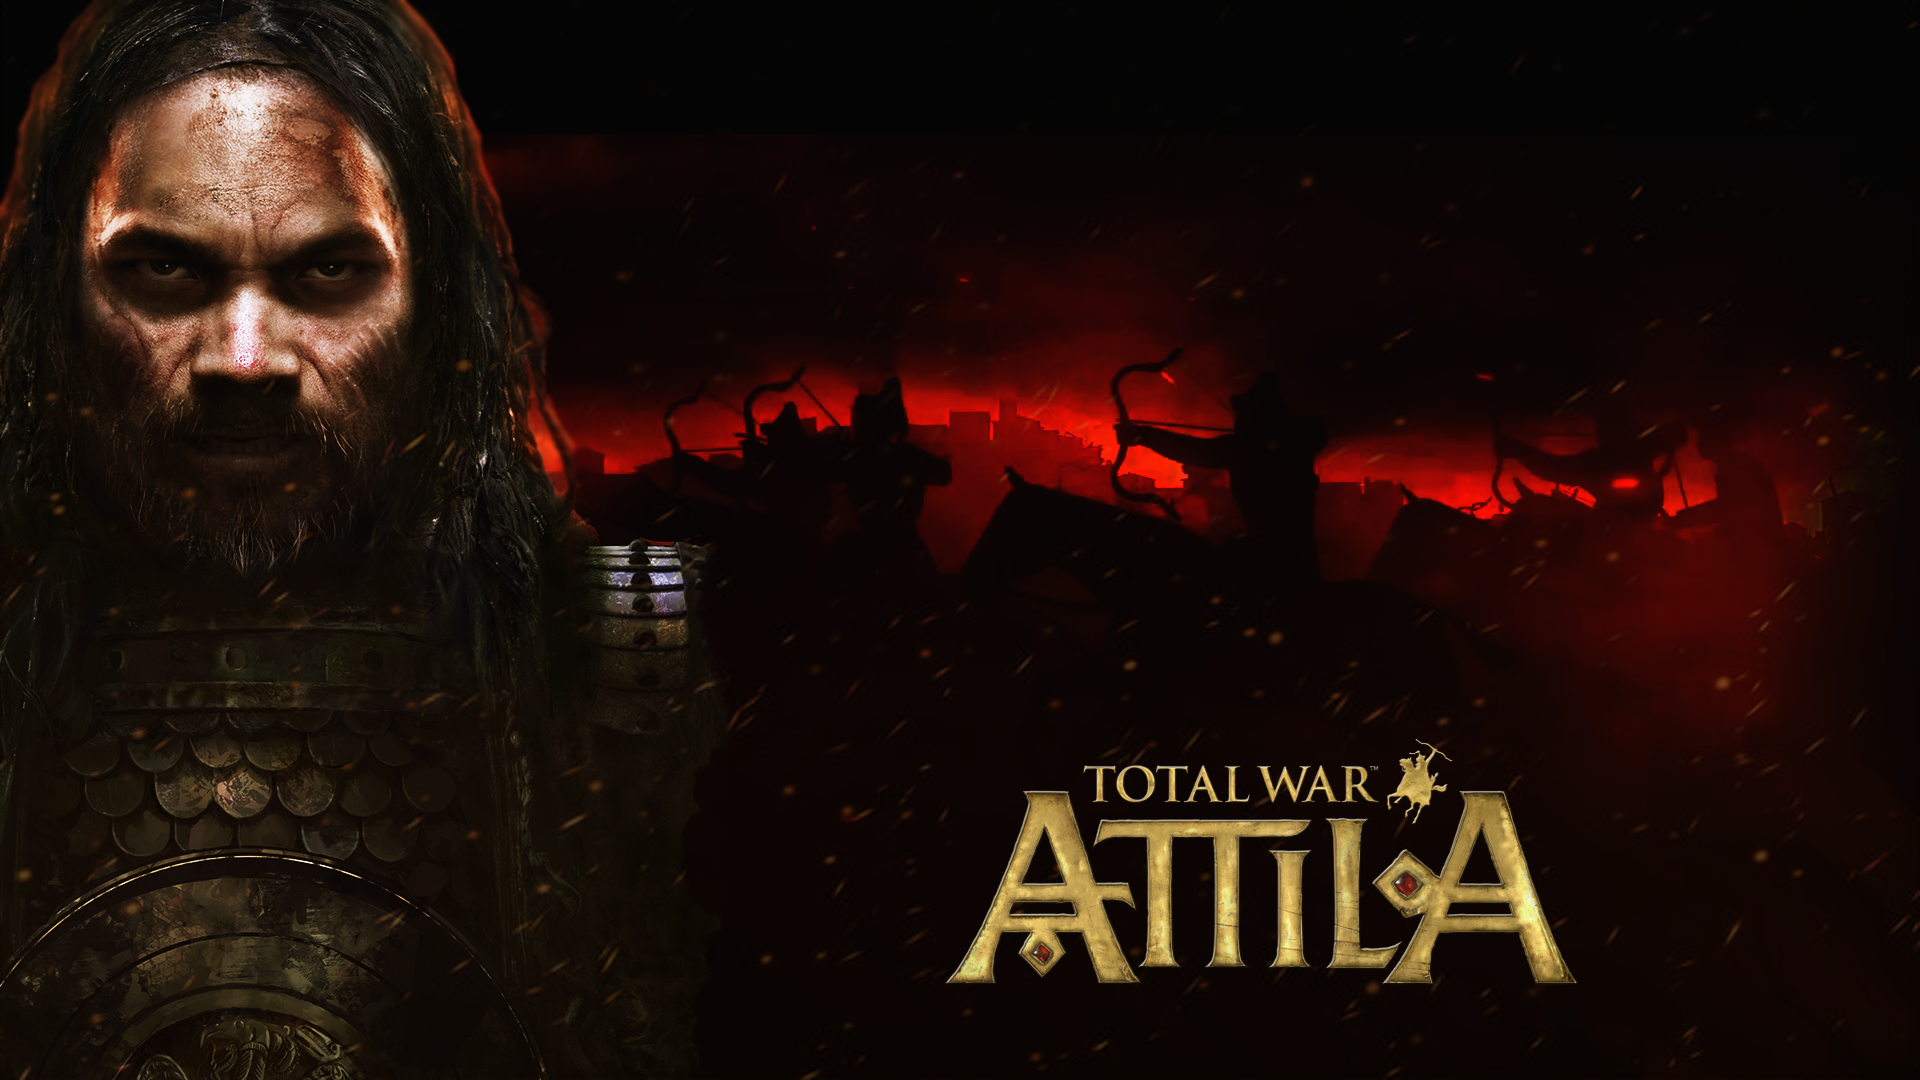 total war attila wallpaper  fan made  by lanoif d8eajkqpng 1920x1080